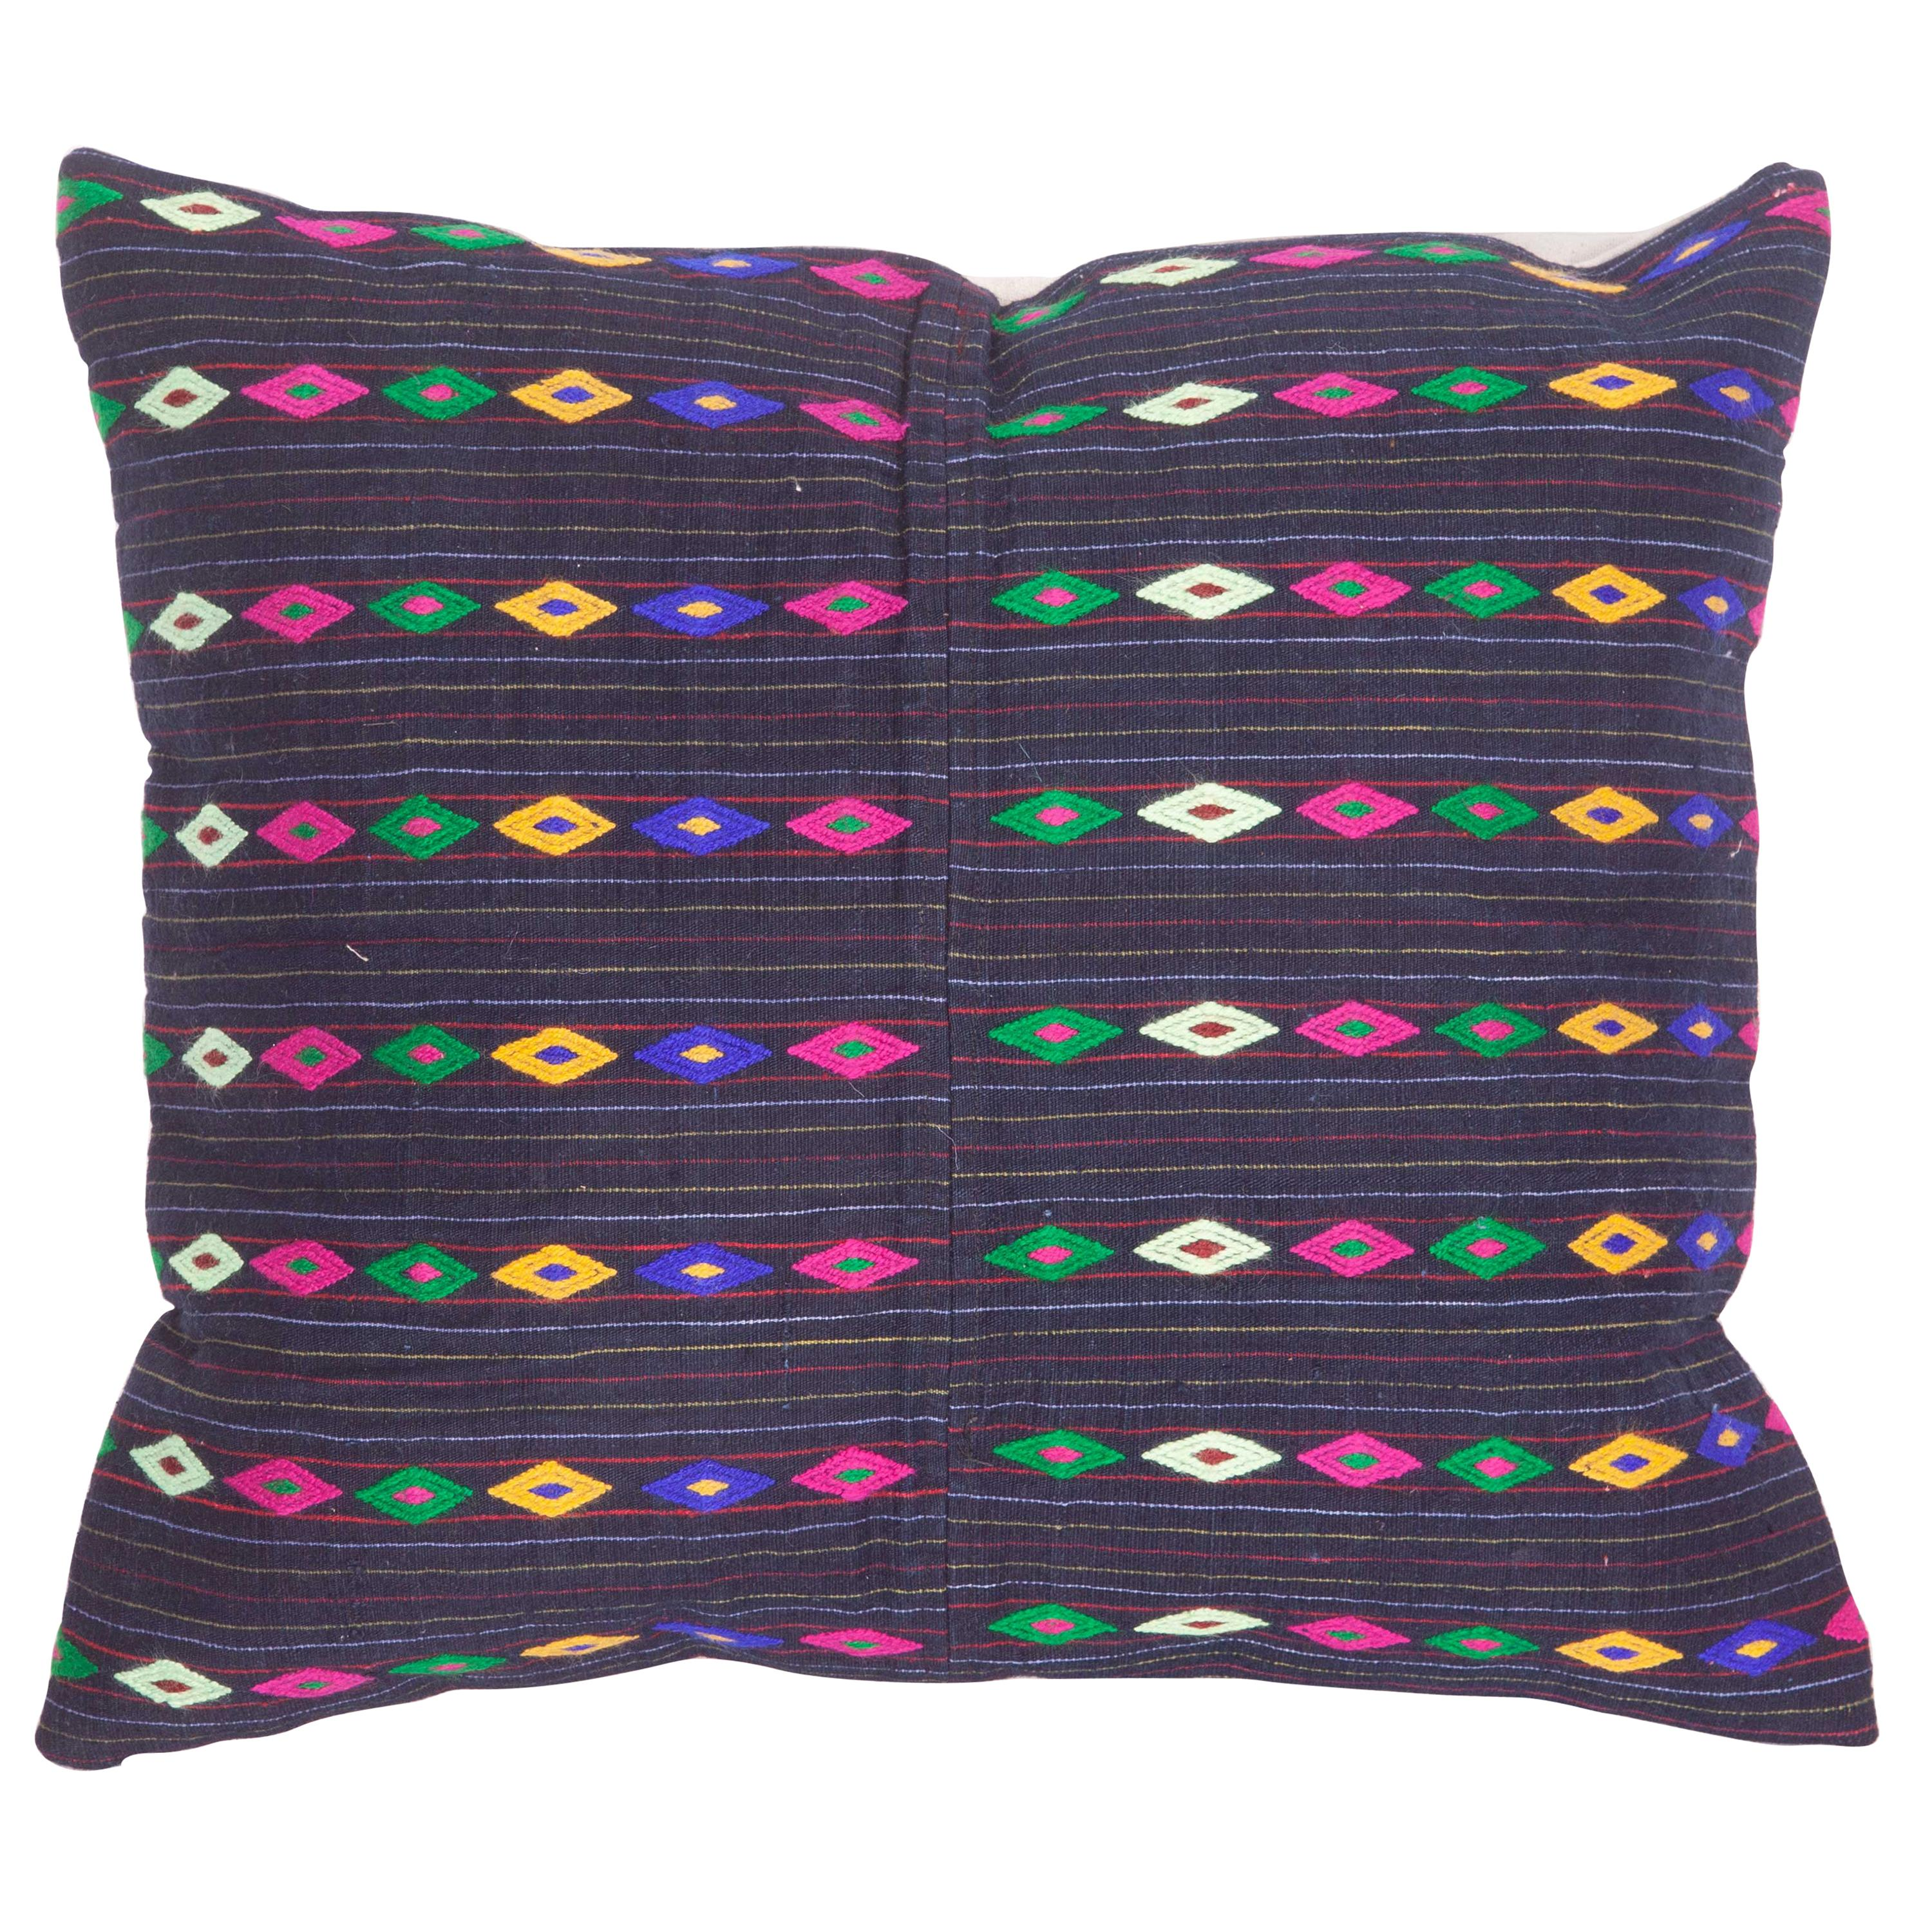 Pillow Case Fashioned from a Mid-20th Century Anatolian Cotton Apron